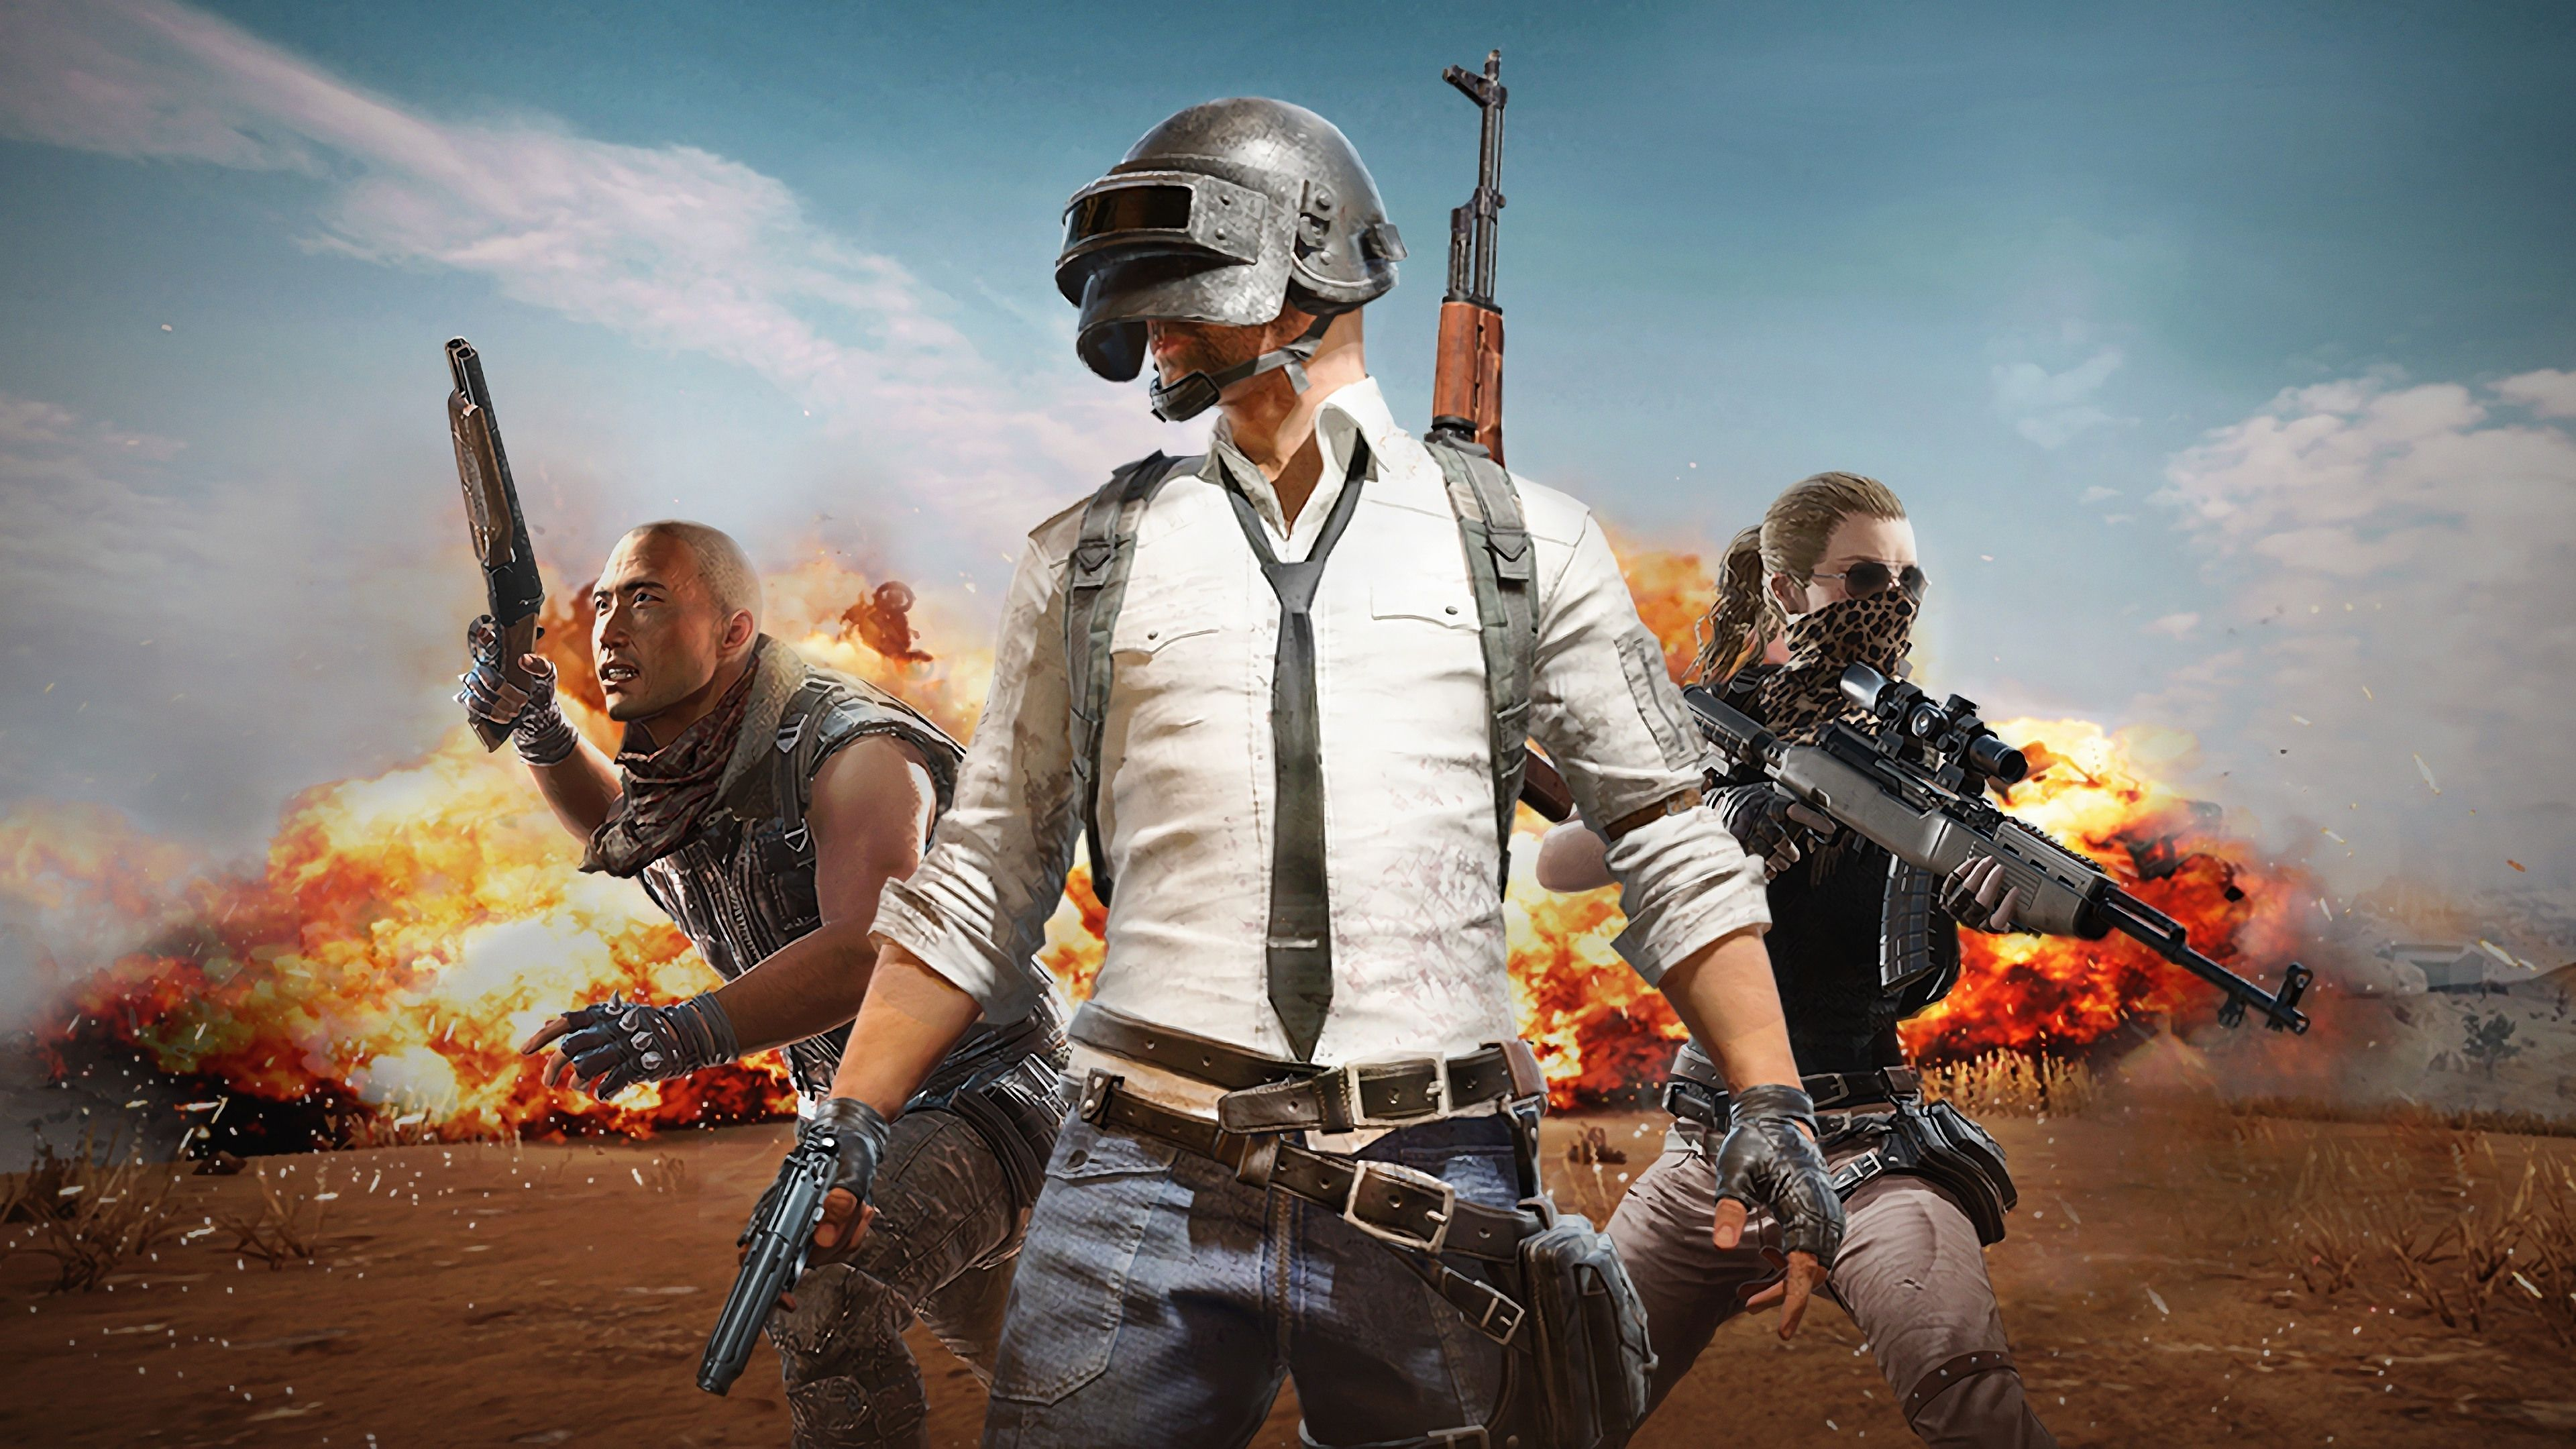 Pubg Game 4k Wallpaper Download: Pubg 4k Game Art Pubg Wallpapers, Playerunknowns